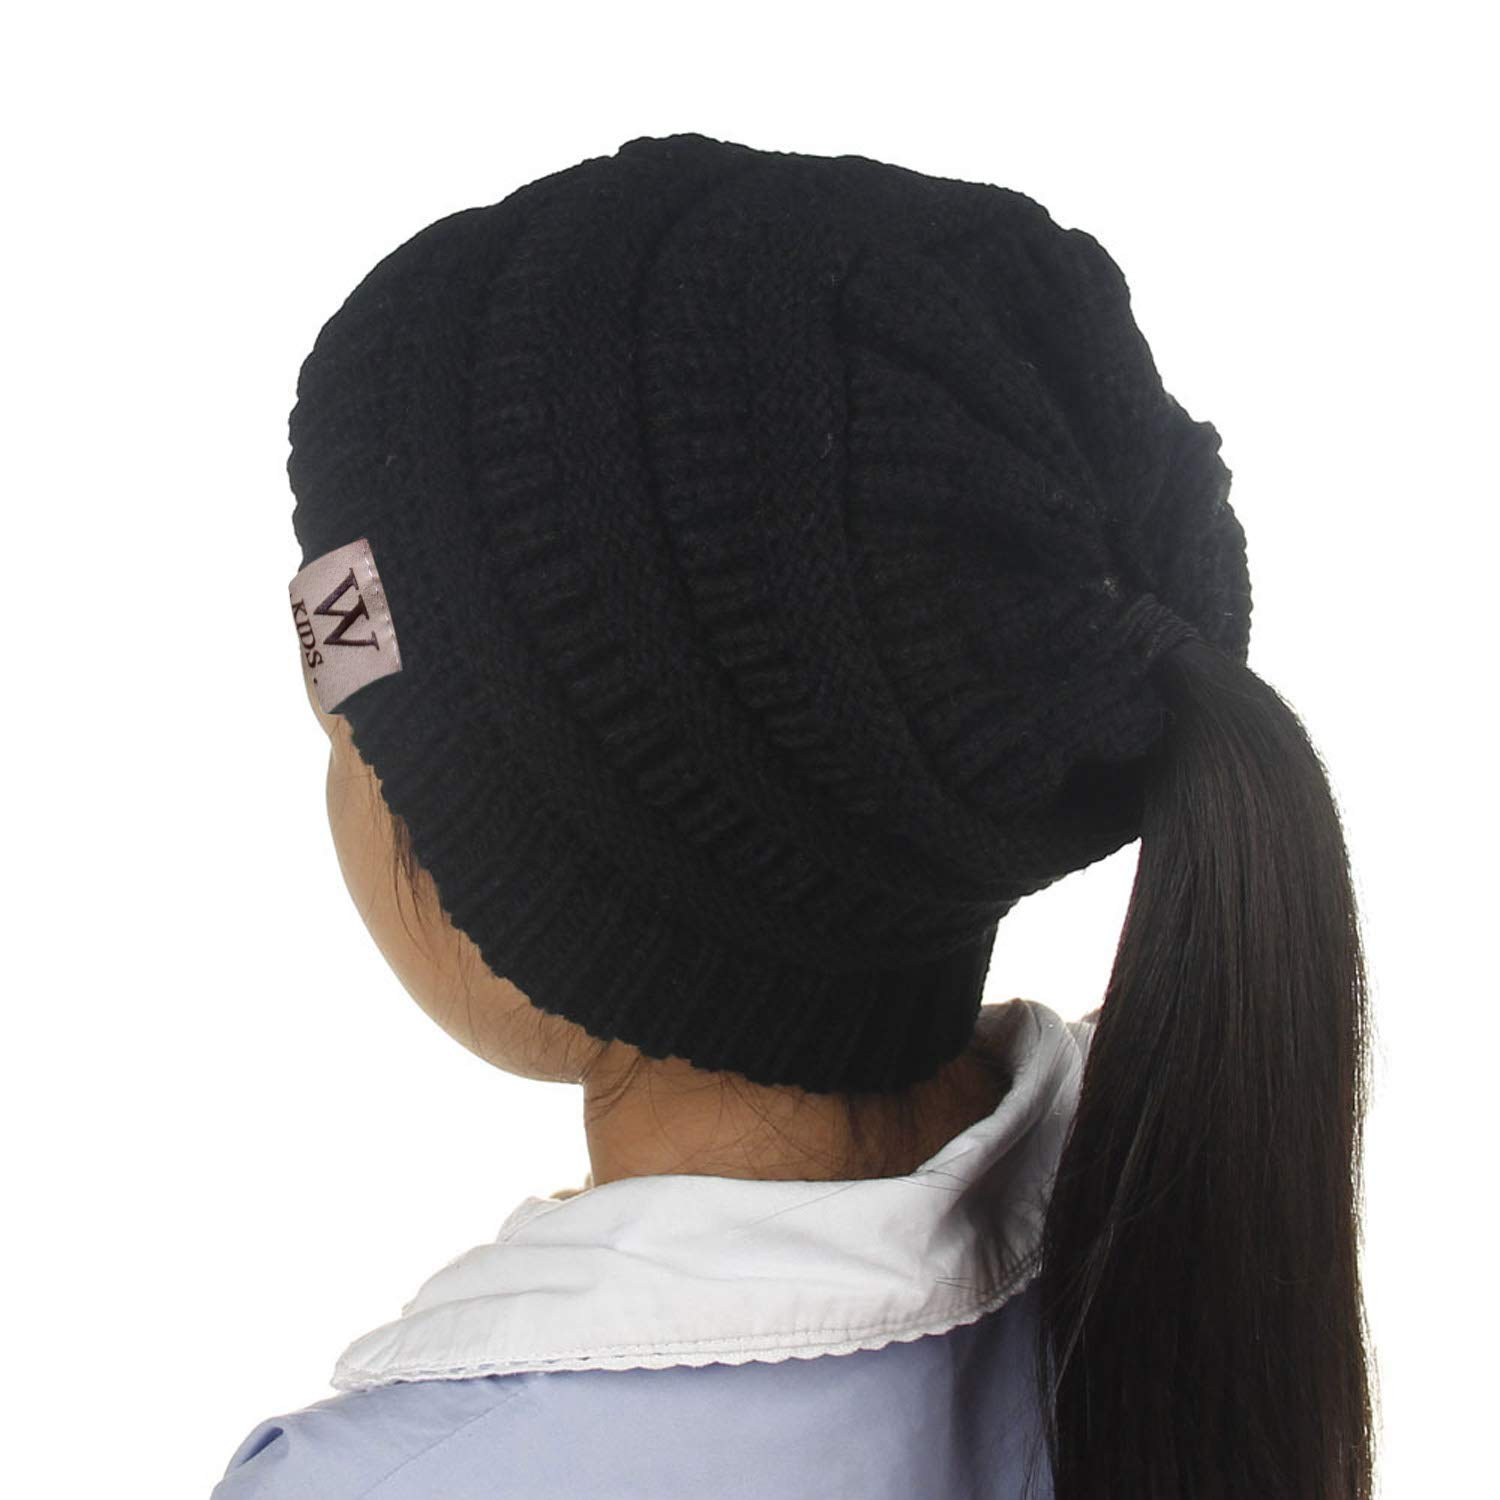 7cdfde8924d Amazon.com  Beanie Ponytail Ponytail Stretch Cable Knit Messy Bun Beanie  Solid Ribbed Hat Kid Girl Children(Fit 2-10 Years Old) (Black)  Clothing